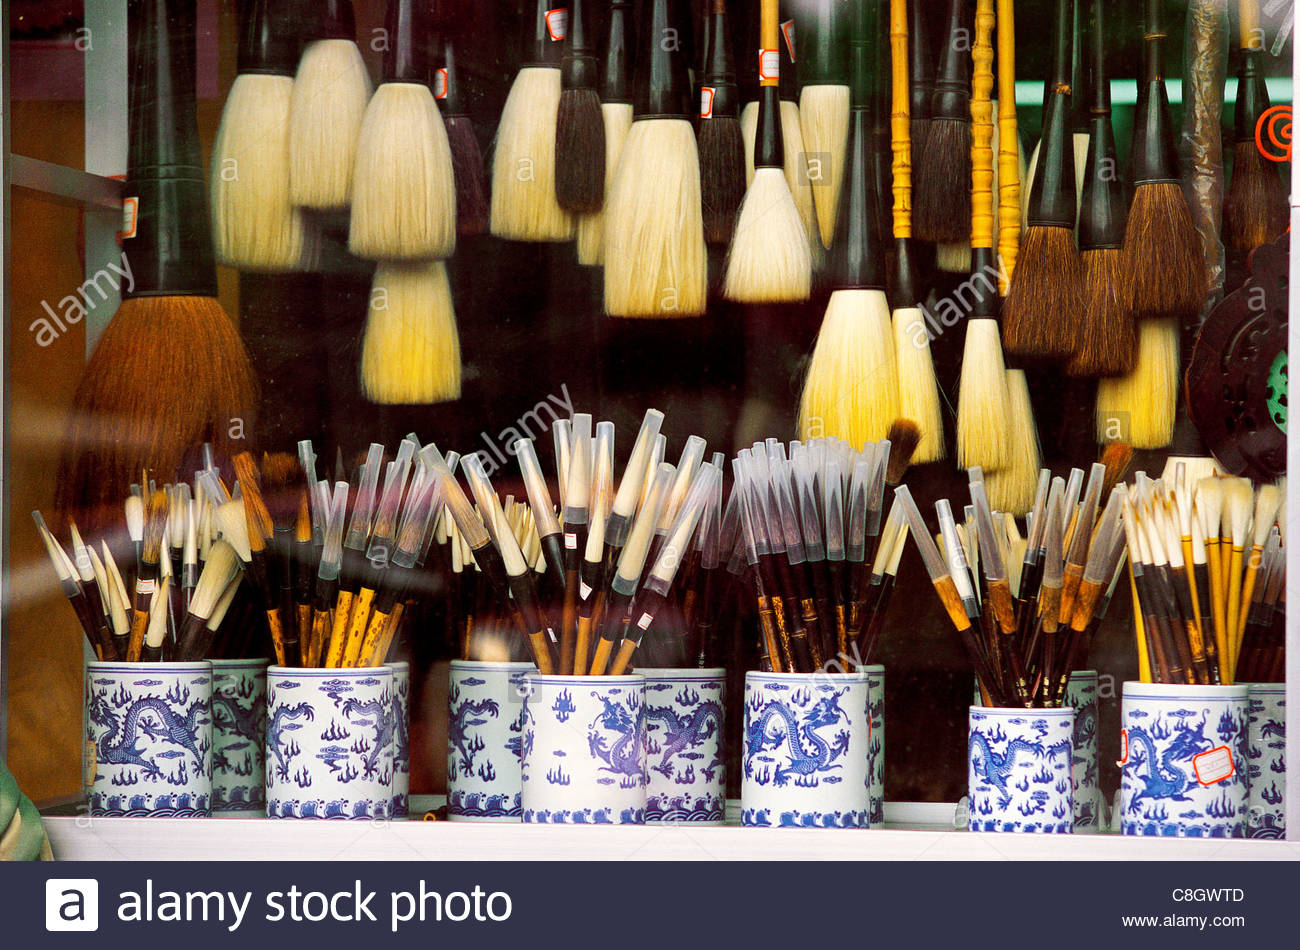 Brushes for performing the art of Chinese Calligraphy are for sale. - Stock Image